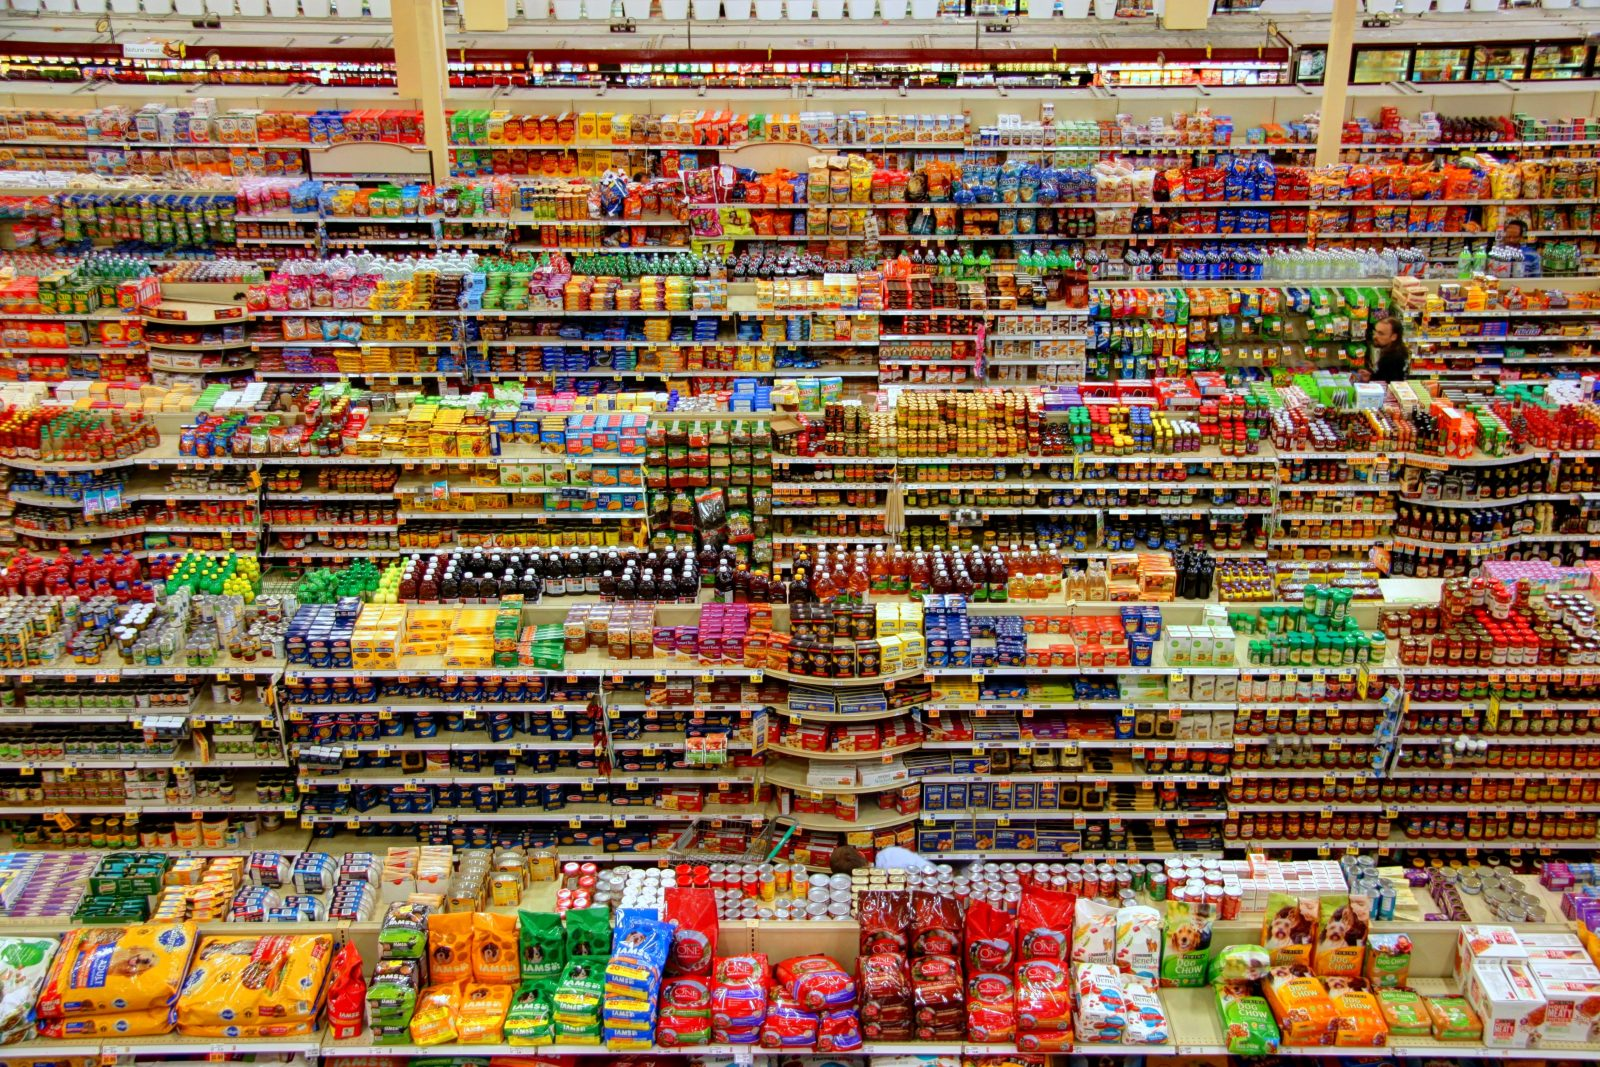 Rows and rows of food in a supermarket